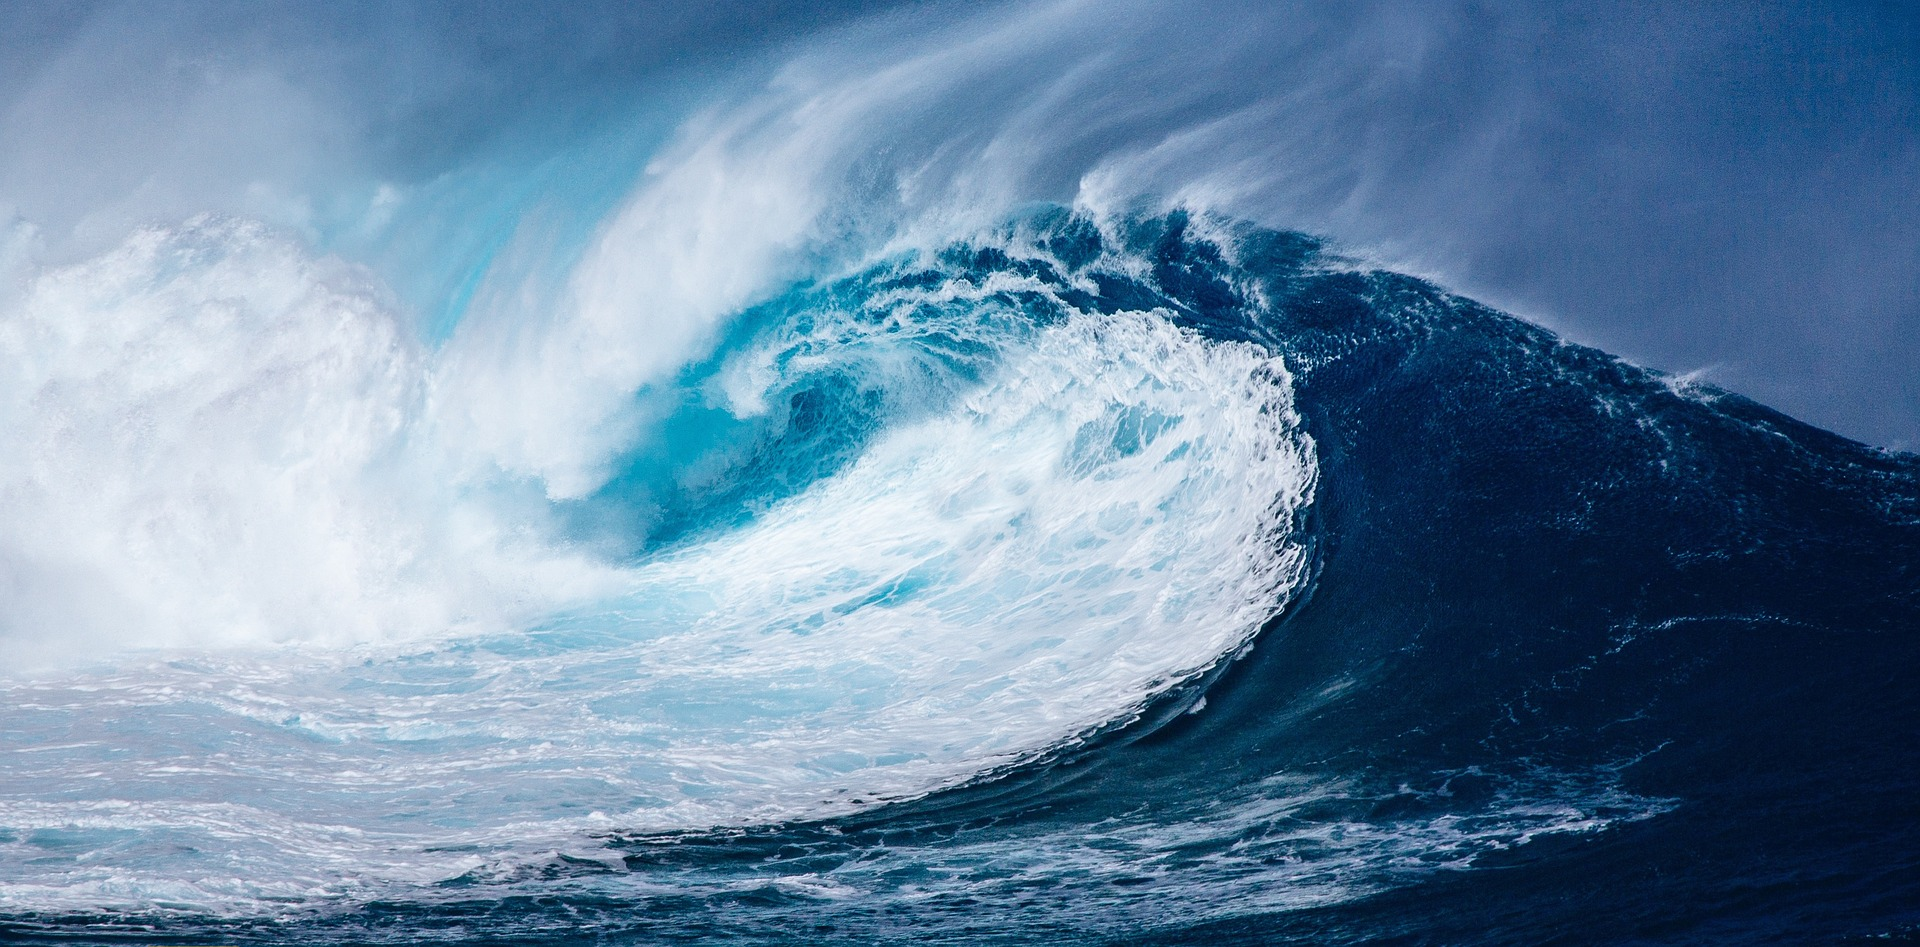 Image of a wave